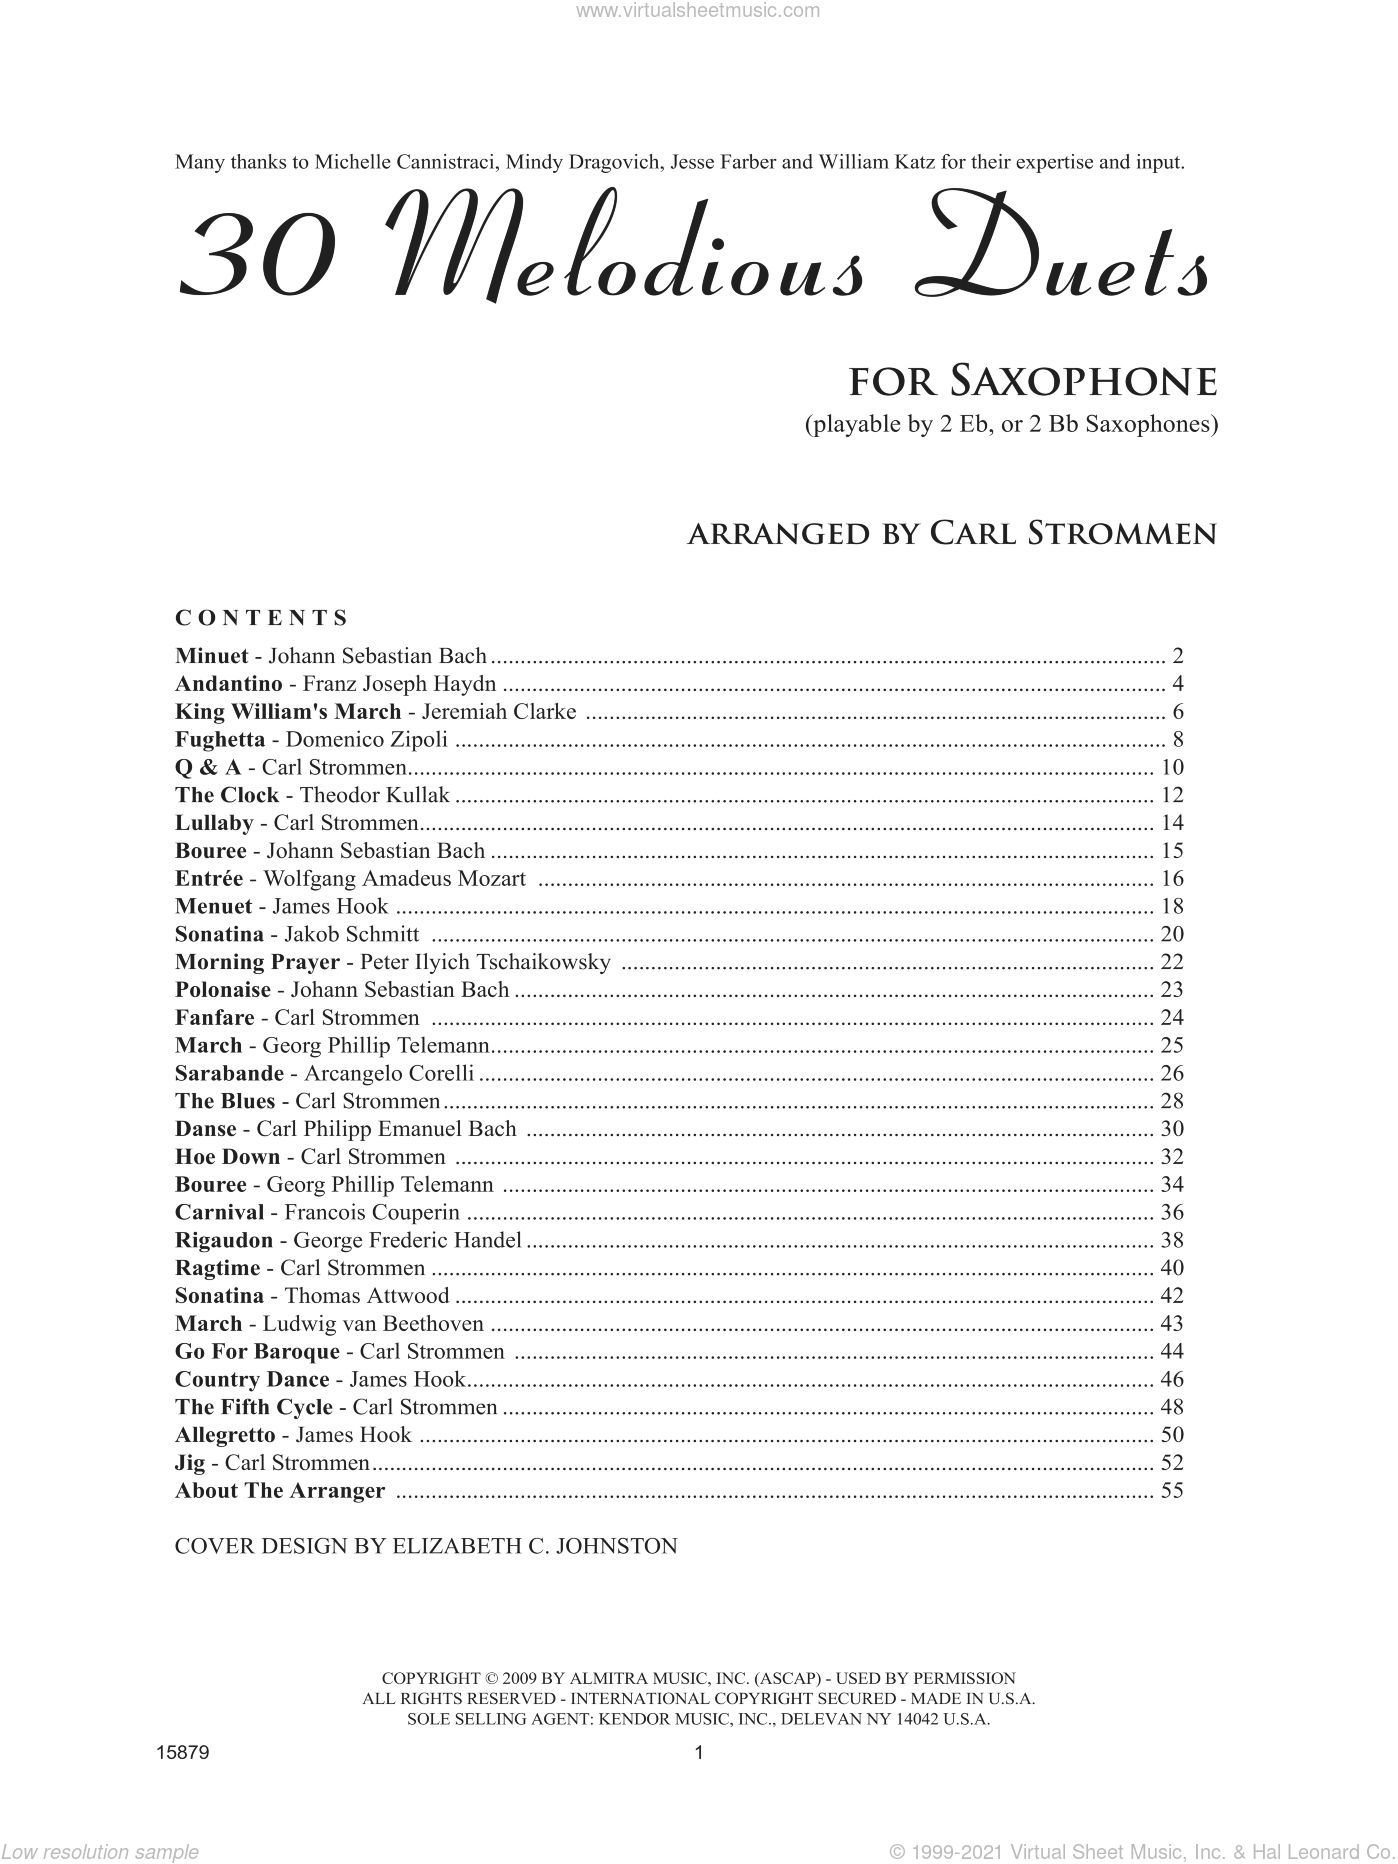 30 Melodious Duets sheet music for two saxophones by Carl Strommen. Score Image Preview.